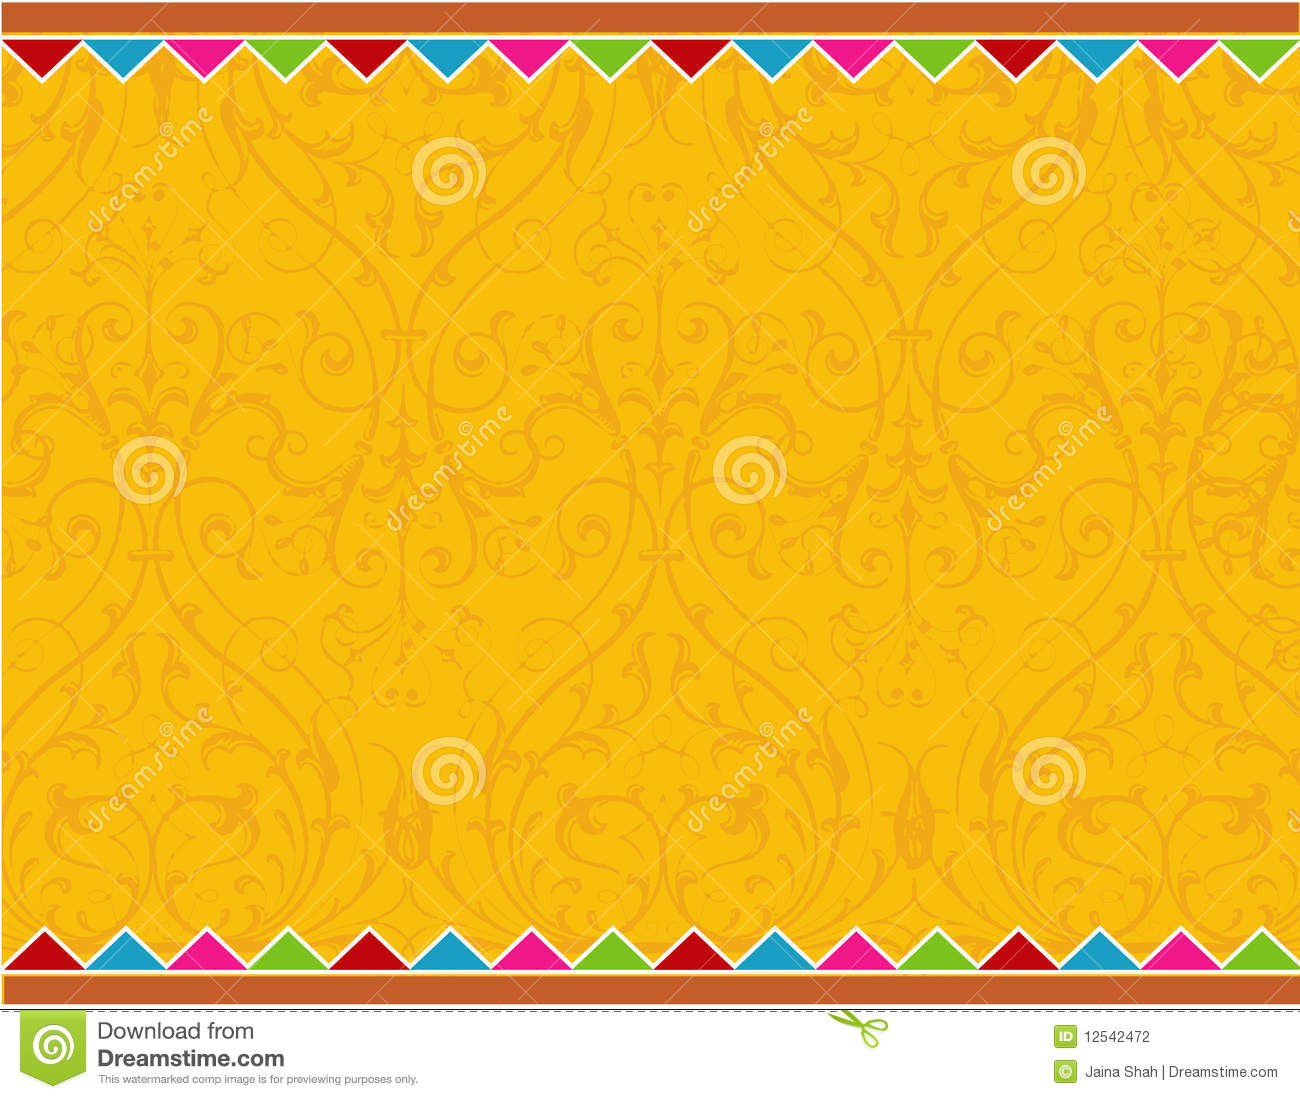 Invitation Card Background Stock Vector Illustration Of Ornamental